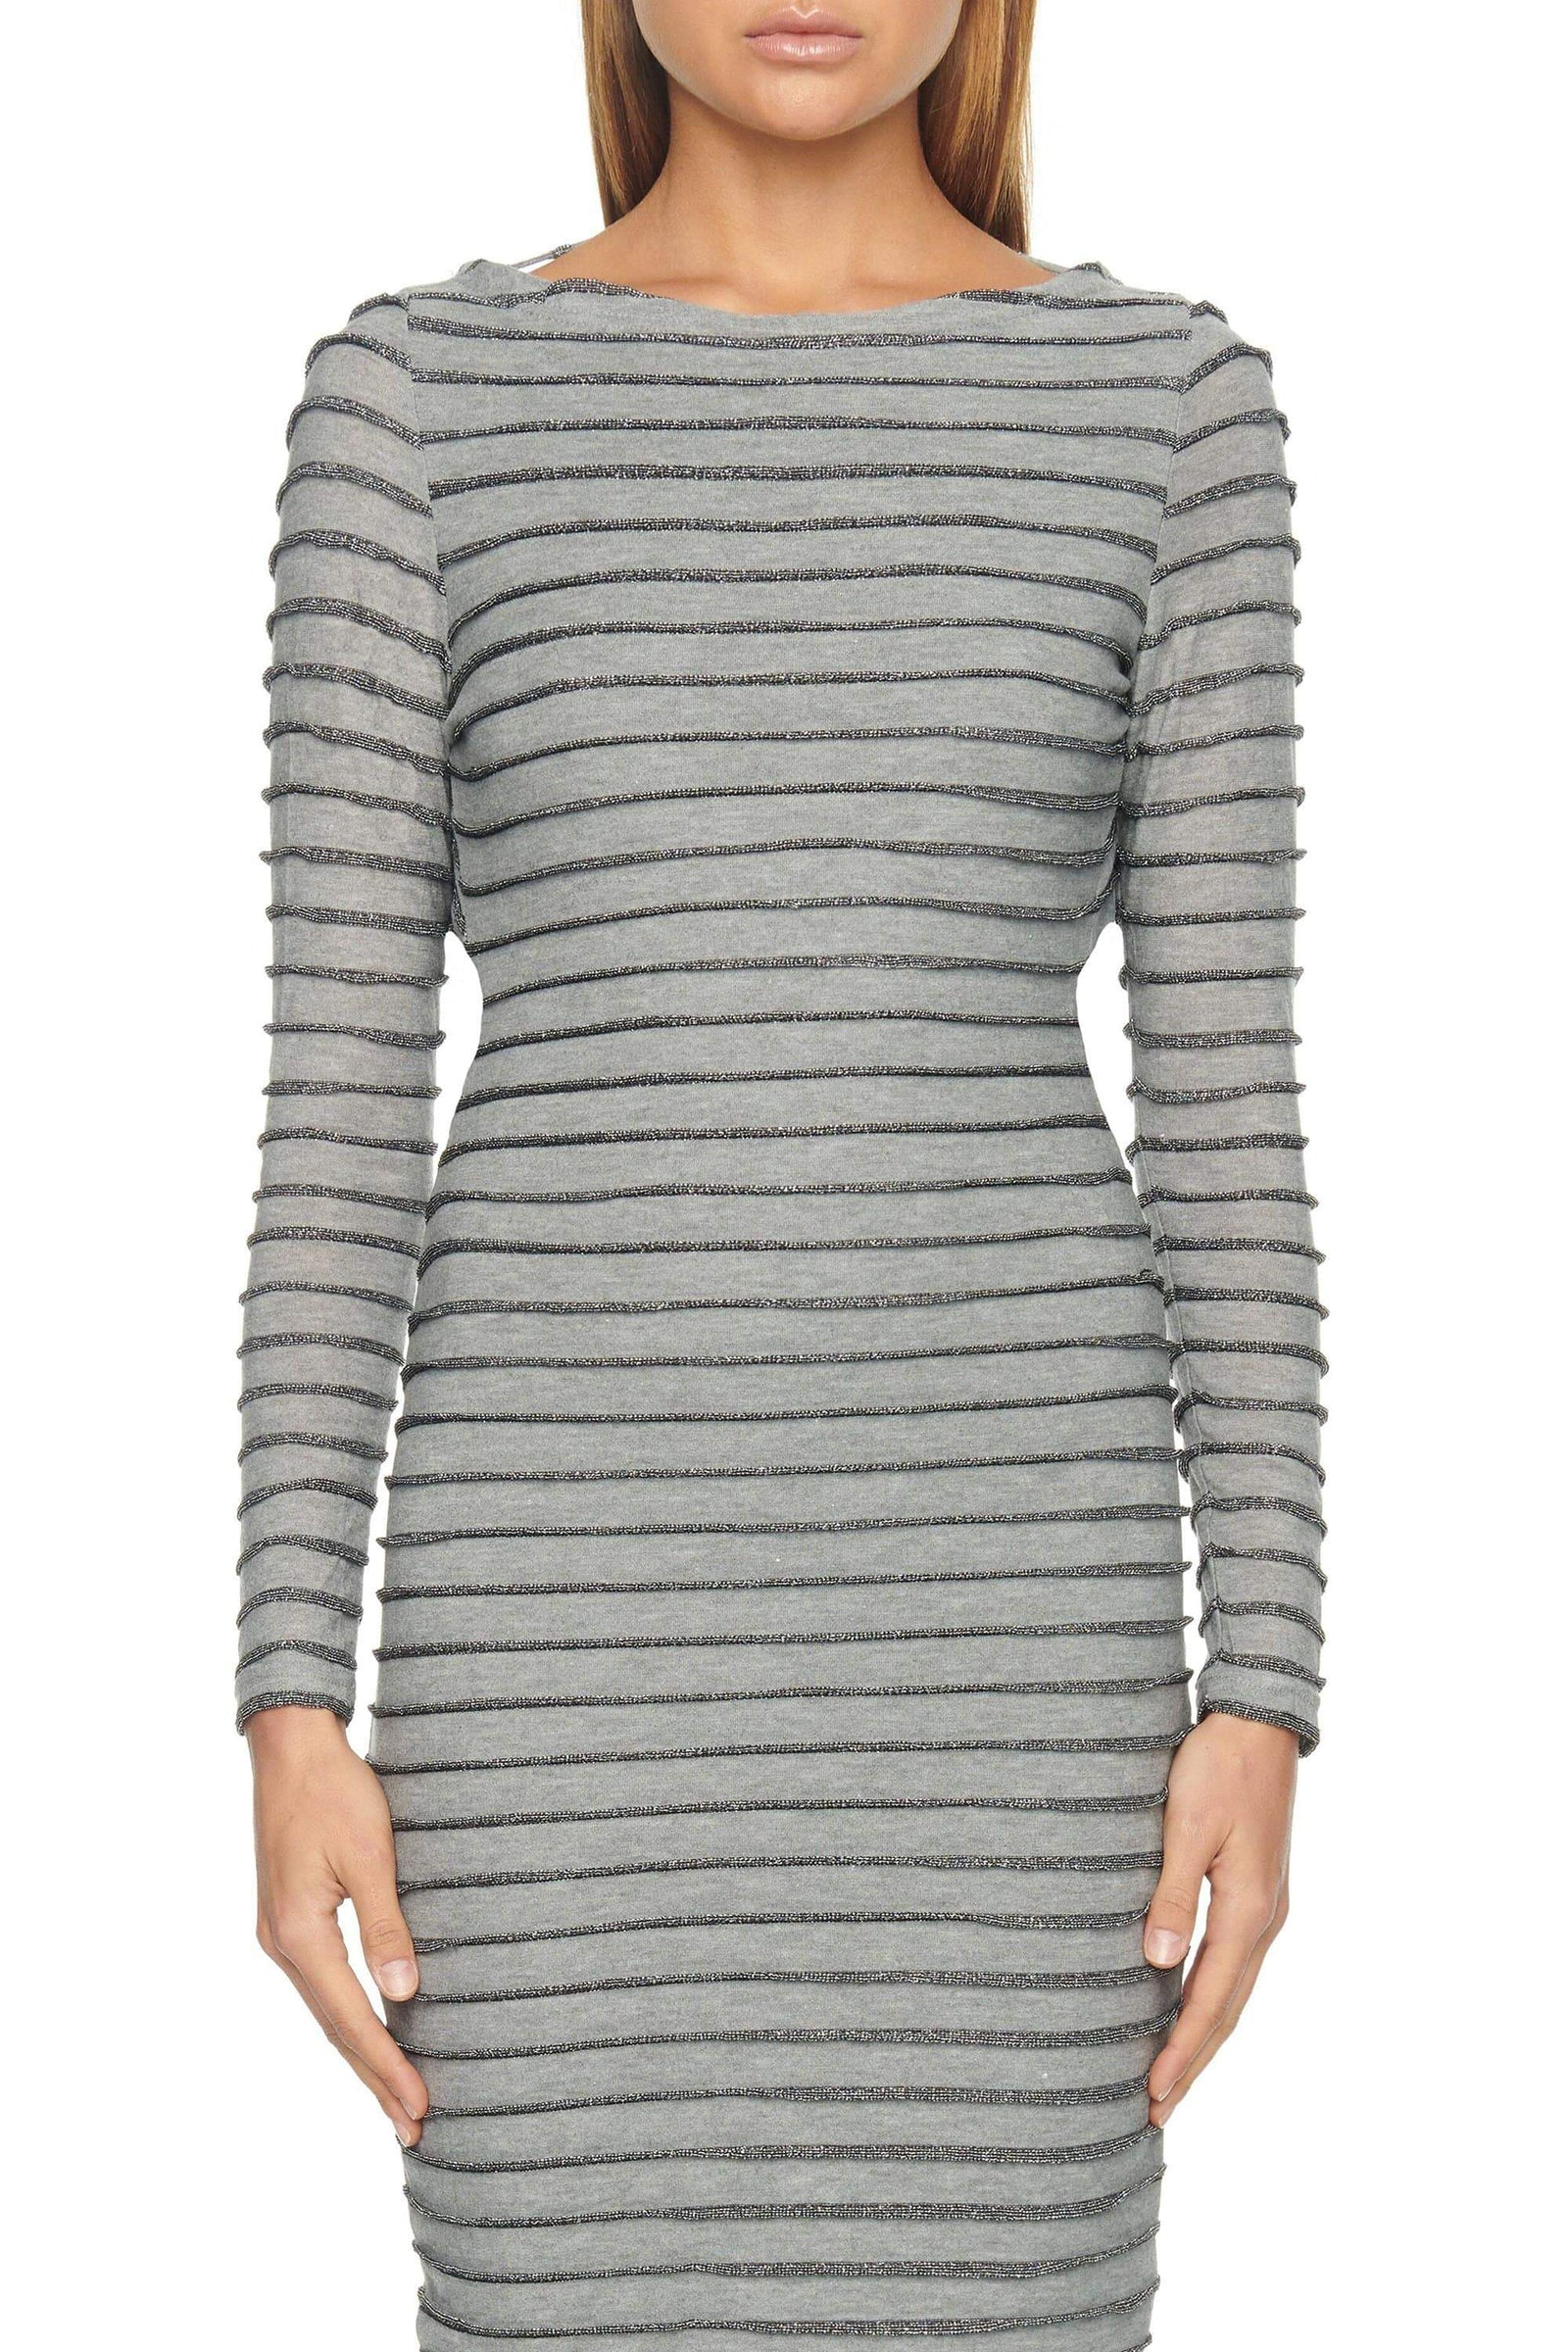 MARTINA KNIT DRESS - ELIYA THE LABEL